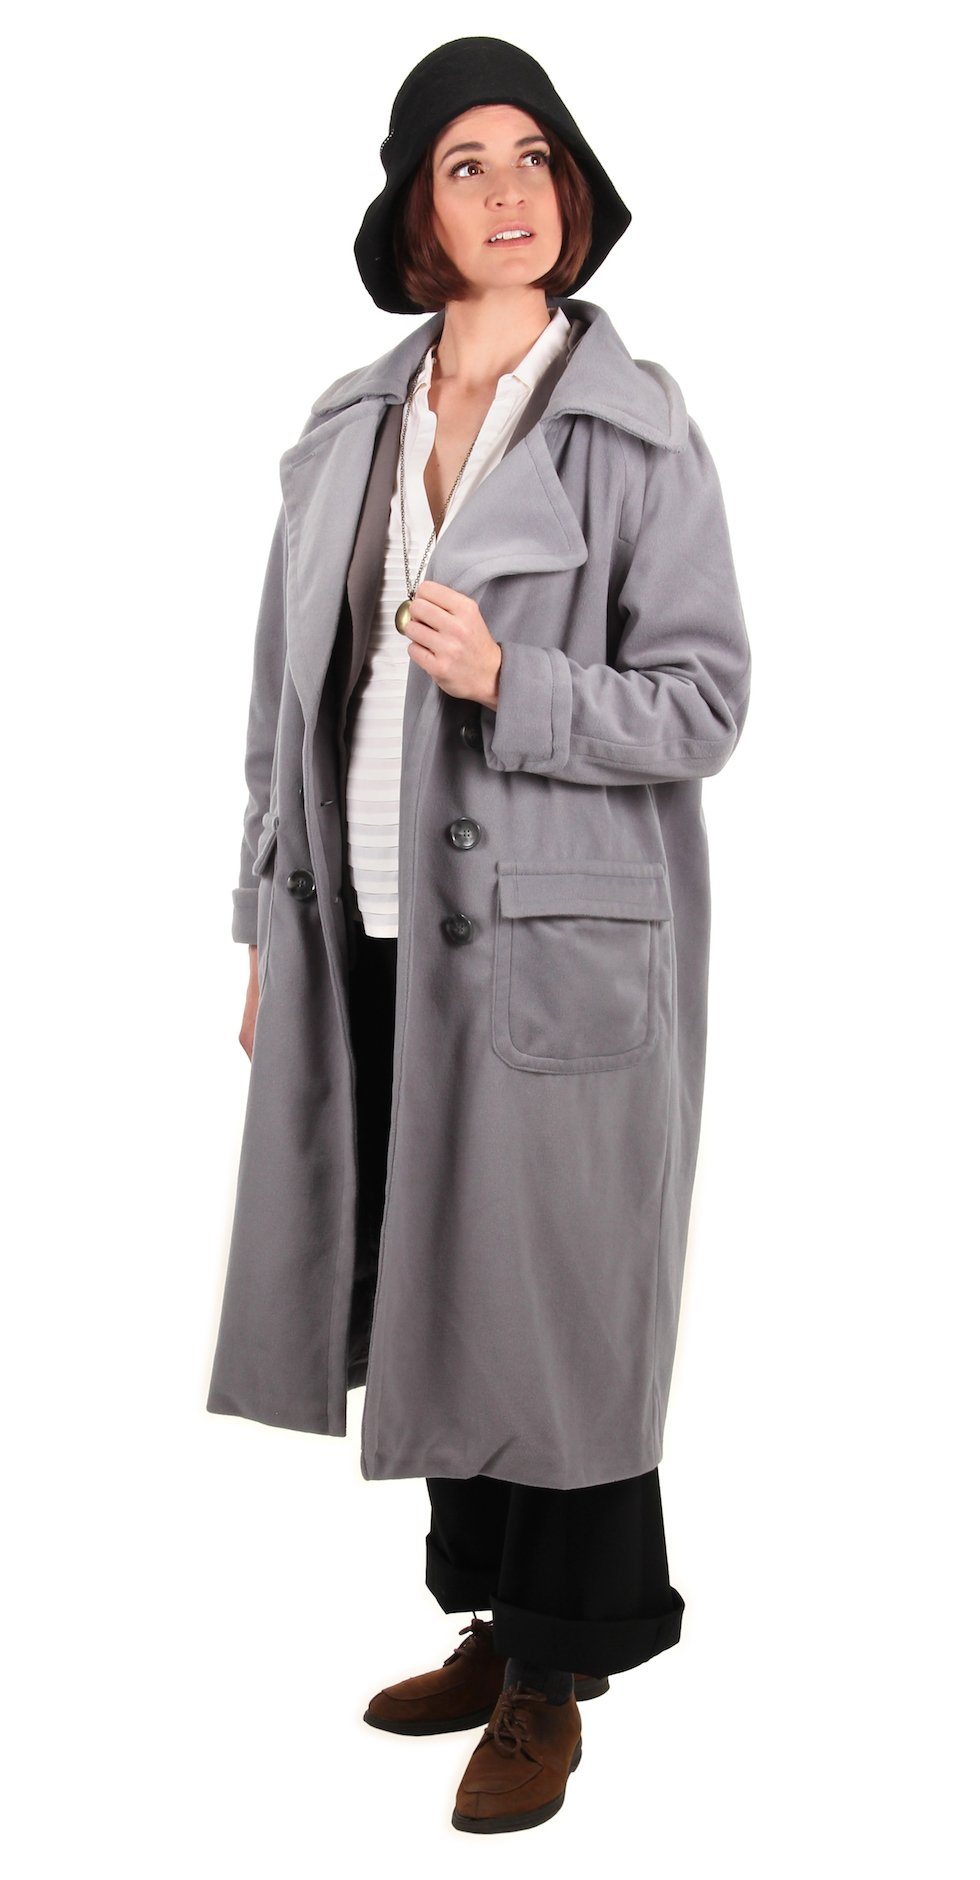 elope Tina Goldstein Costume Coat for Women by